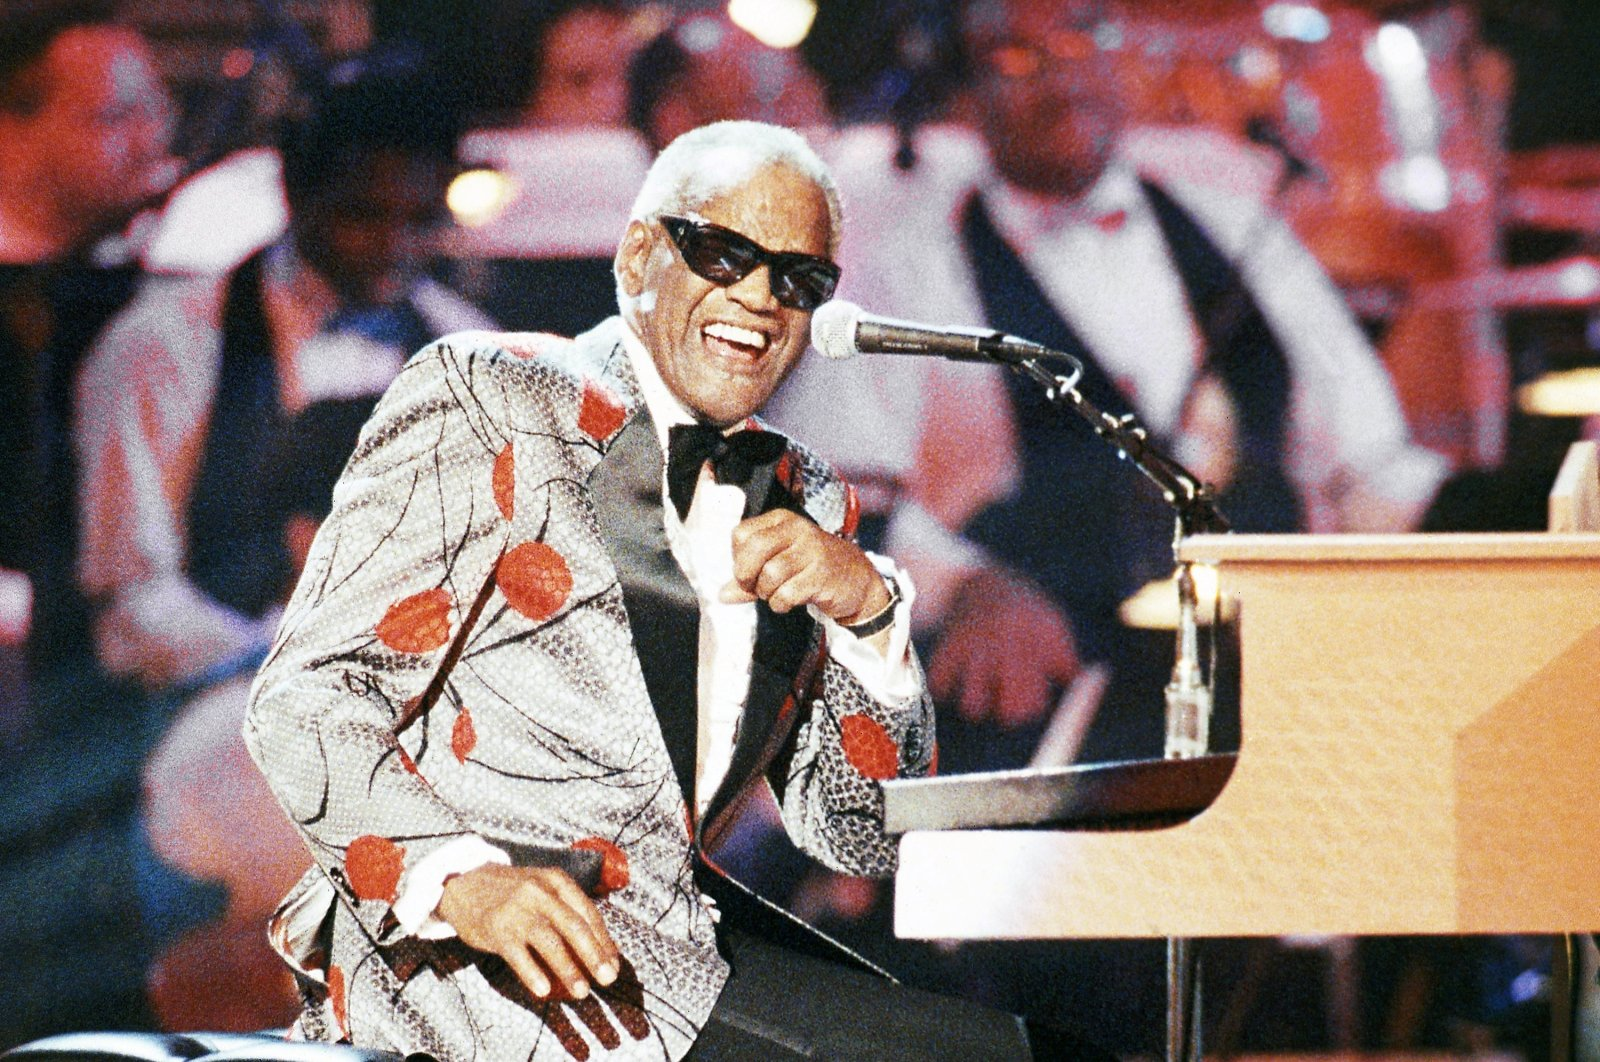 """Legendary musician, Ray Charles, performs at the piano during the taping of """"Ray Charles: 50 Years in Music, uh-huh,"""" a benefit musical gala for Starlight/Starbright Foundation in Pasadena, California, Sept. 20, 1991. (AP Photo)"""